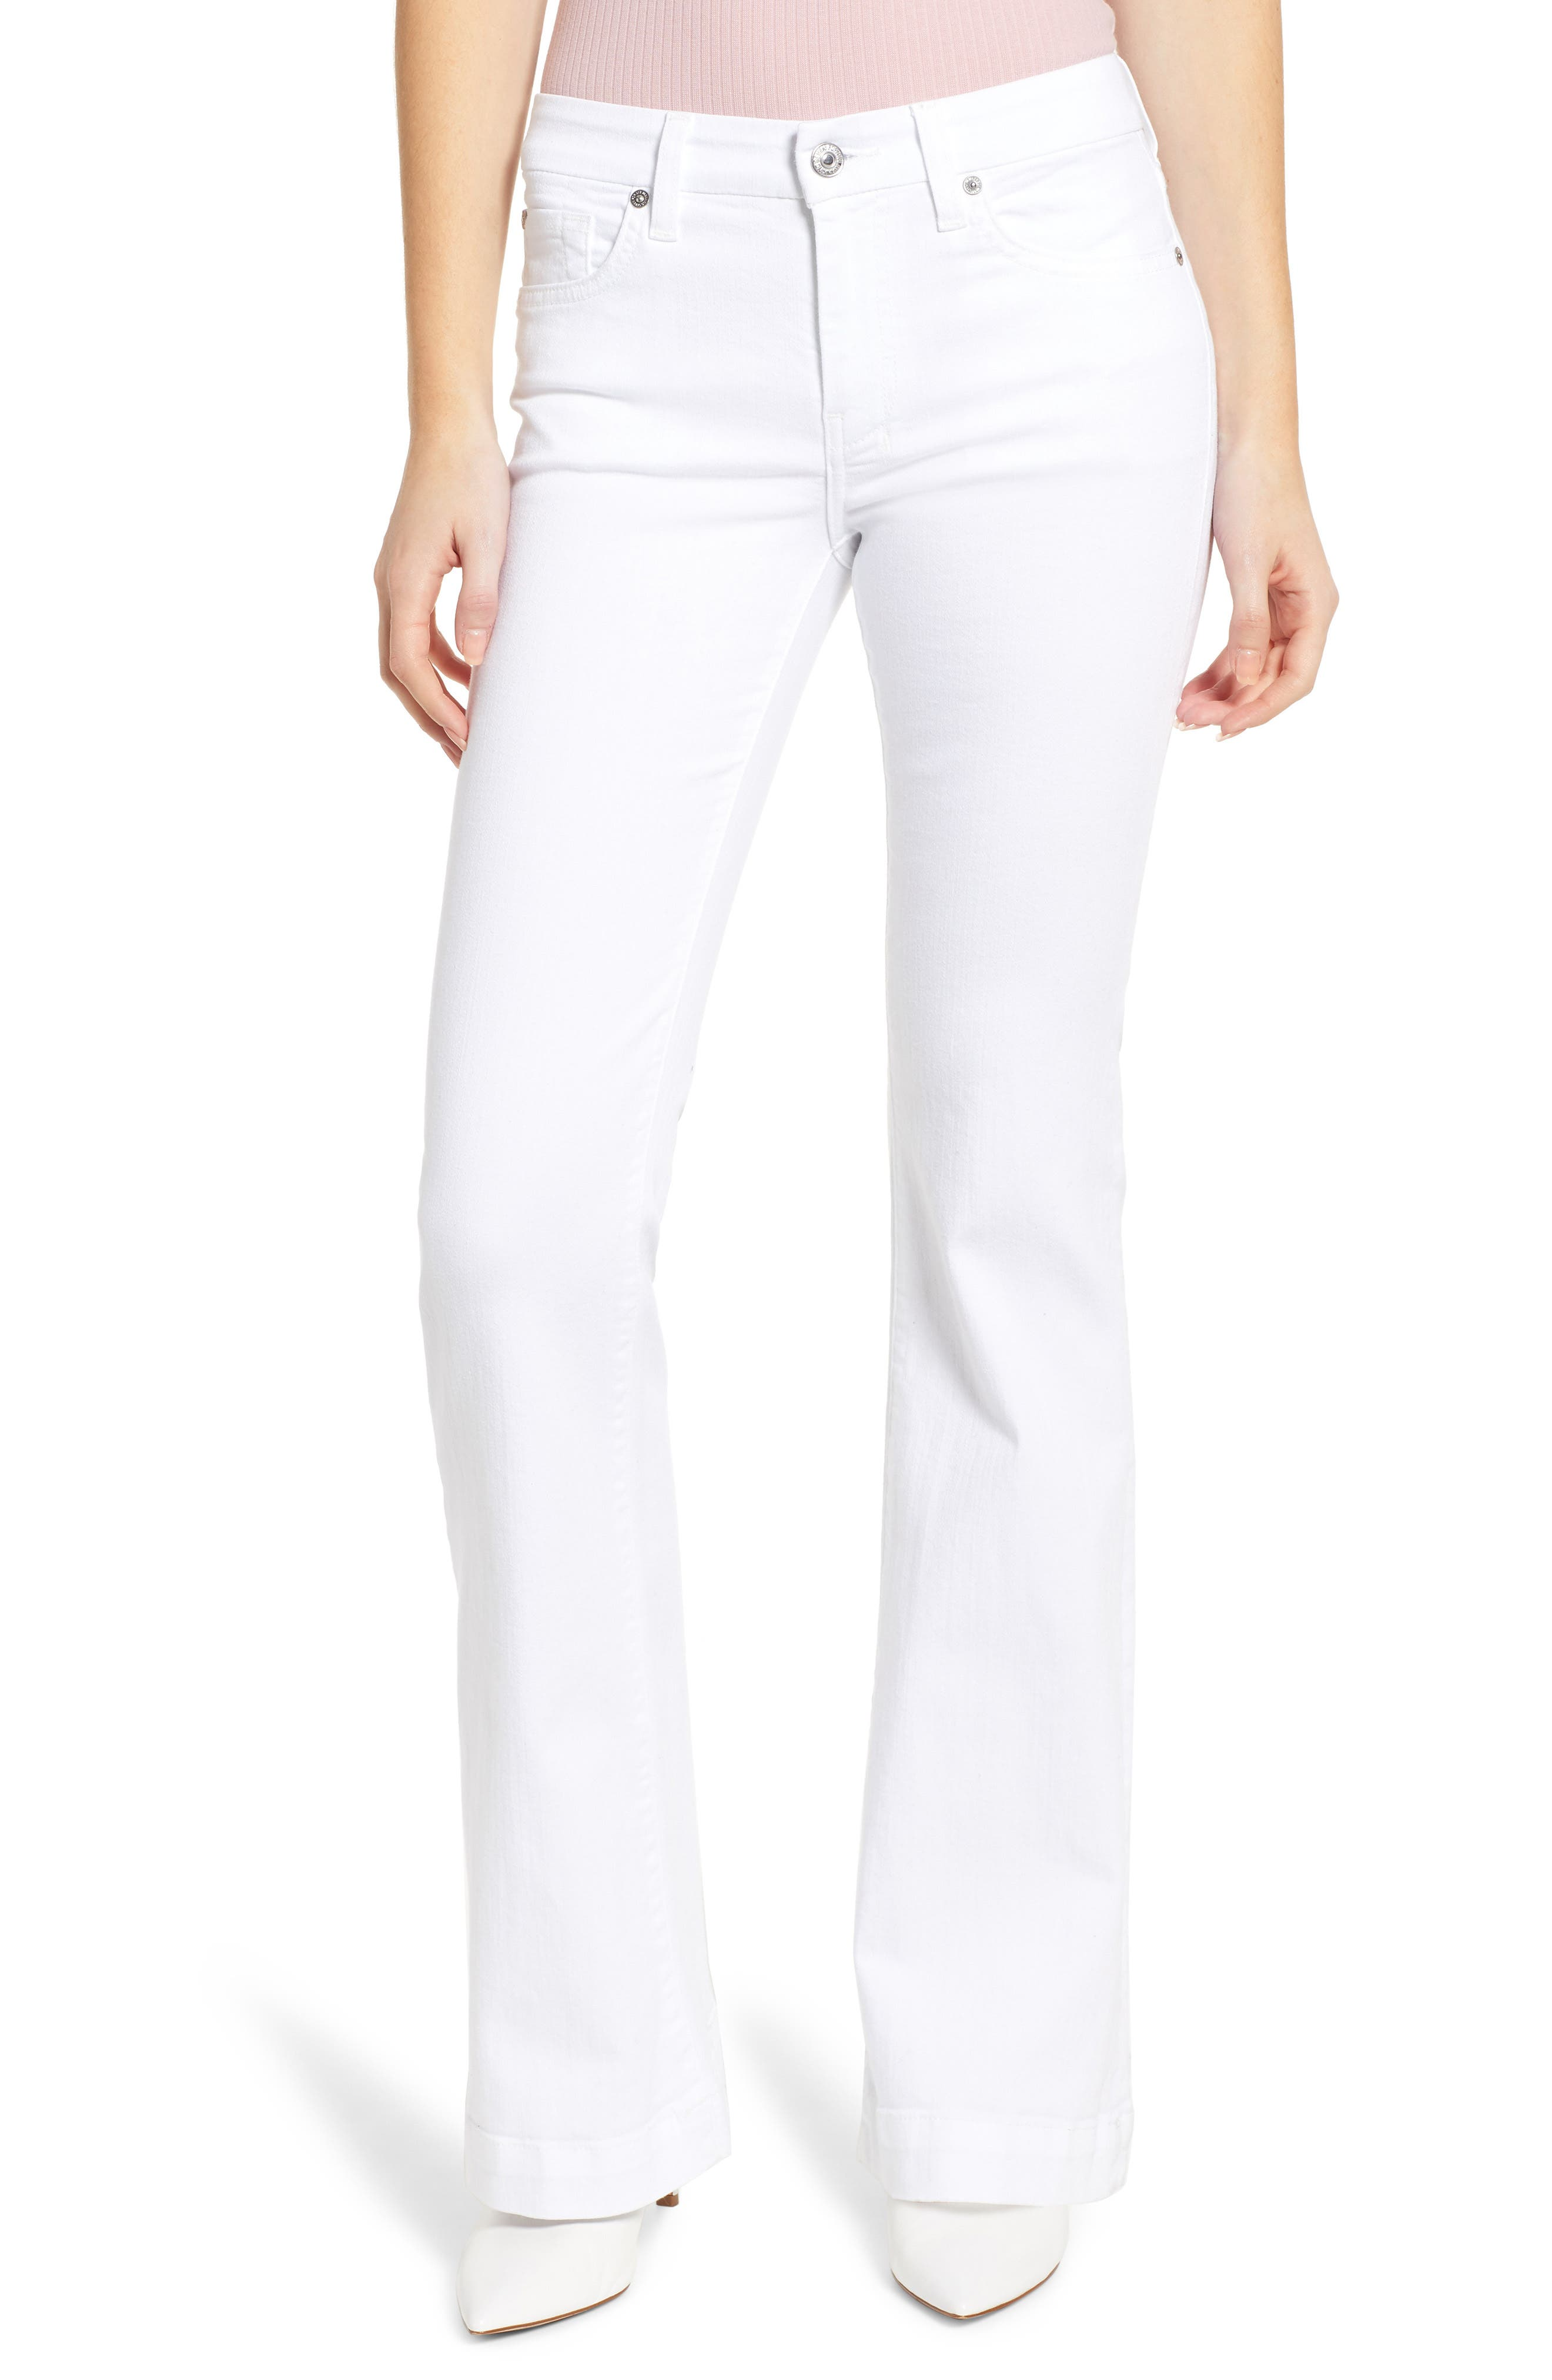 7 FOR ALL MANKIND<SUP>®</SUP>, Dojo Flare Jeans, Main thumbnail 1, color, WHITE RUNWAY DENIM